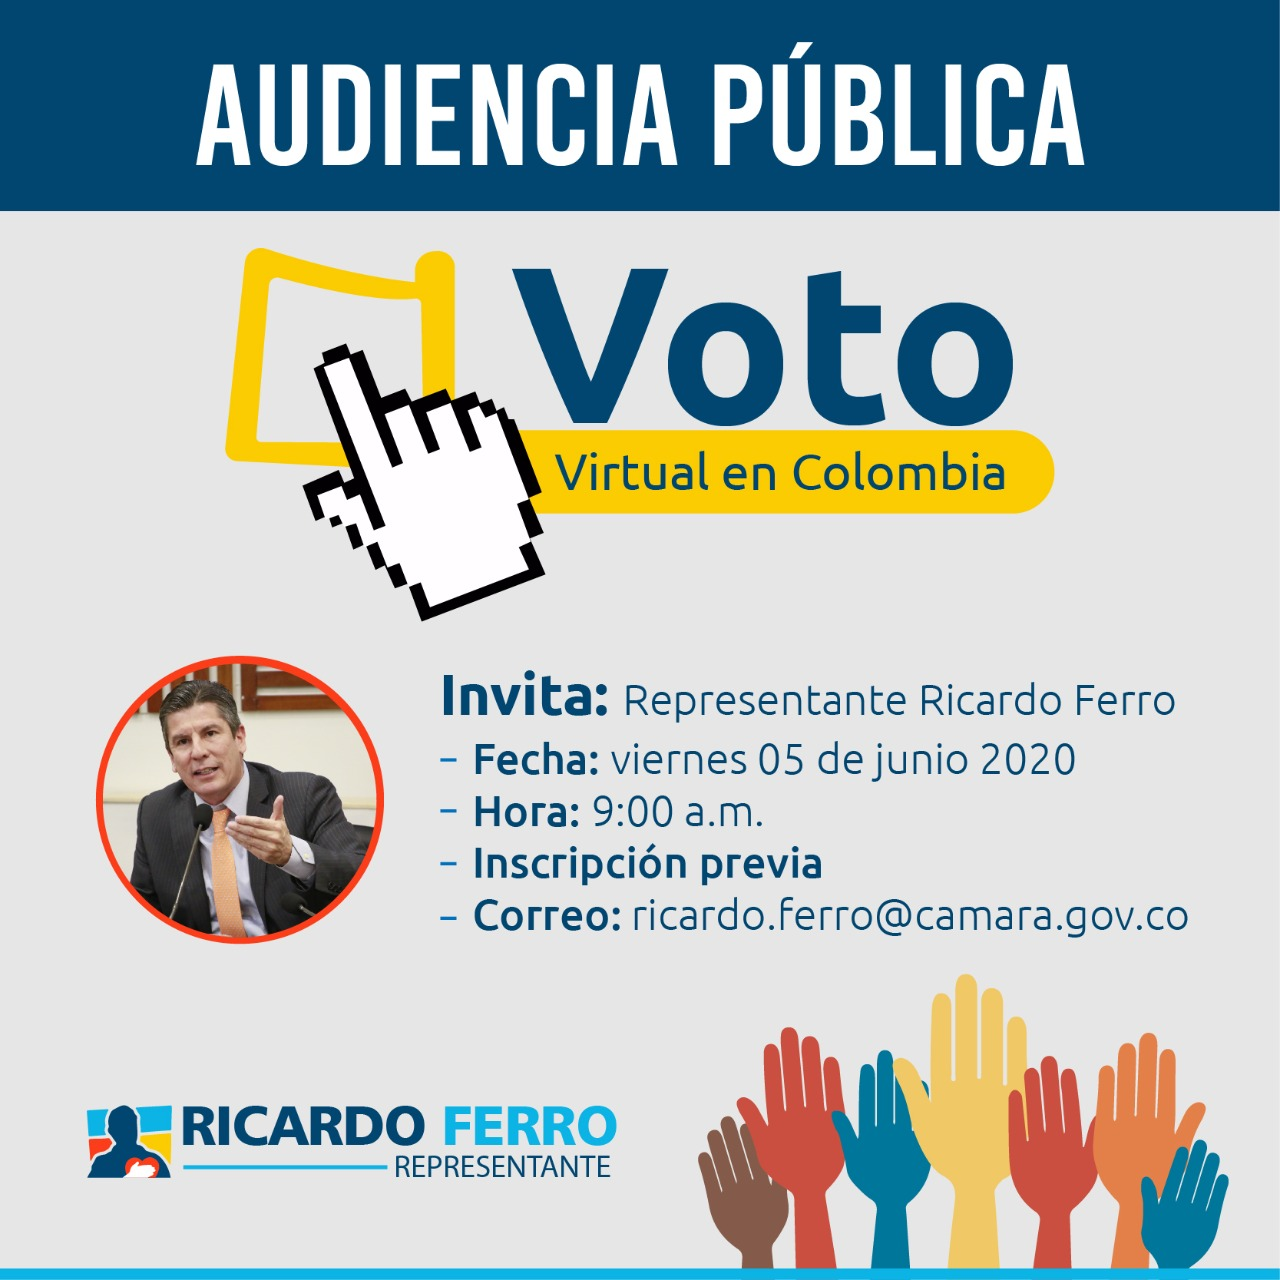 AUDIENCIA JUNIO 5 DE 2020 VOTO VIRTUAL